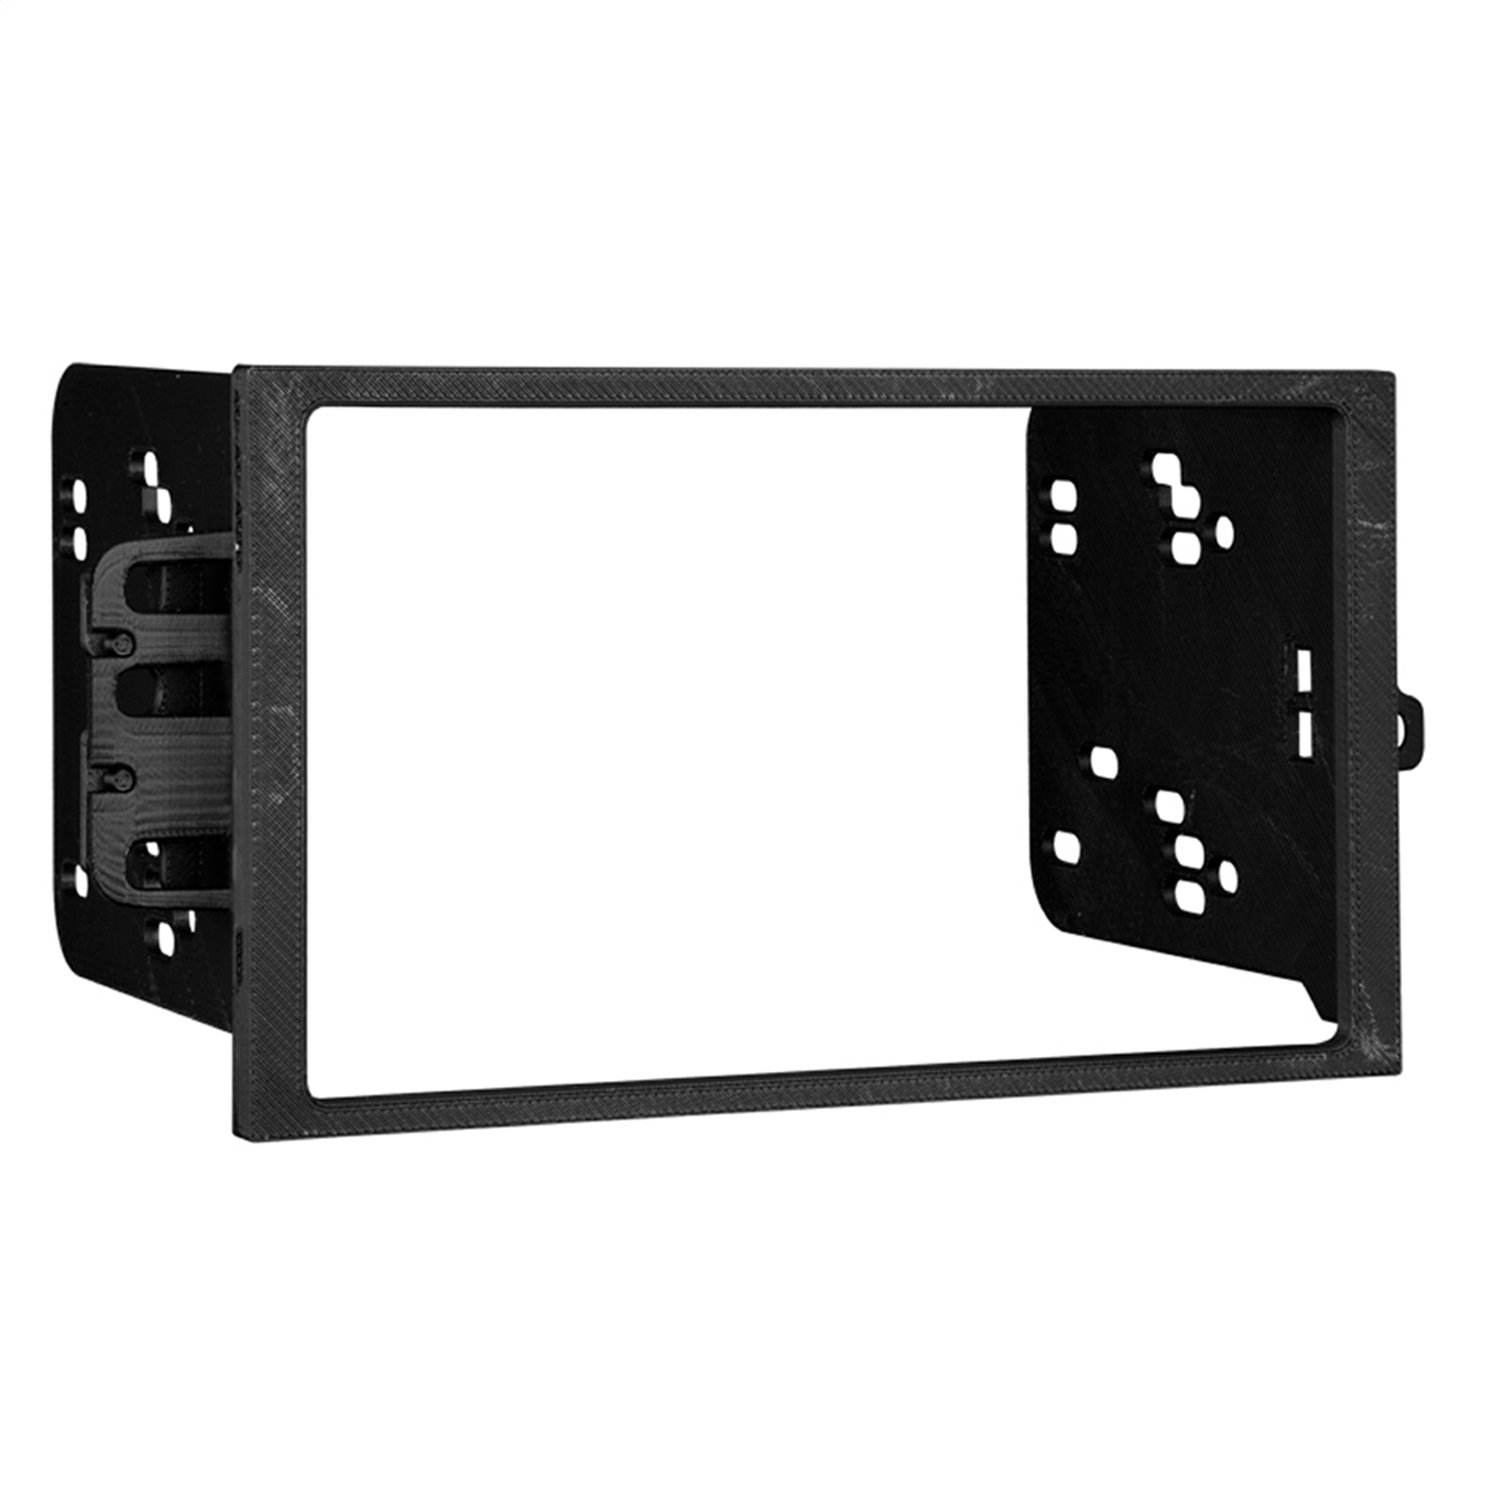 Metra Electronics 95-2001 Double DIN Installation Dash Kit for Select 1990-Up GM Vehicles